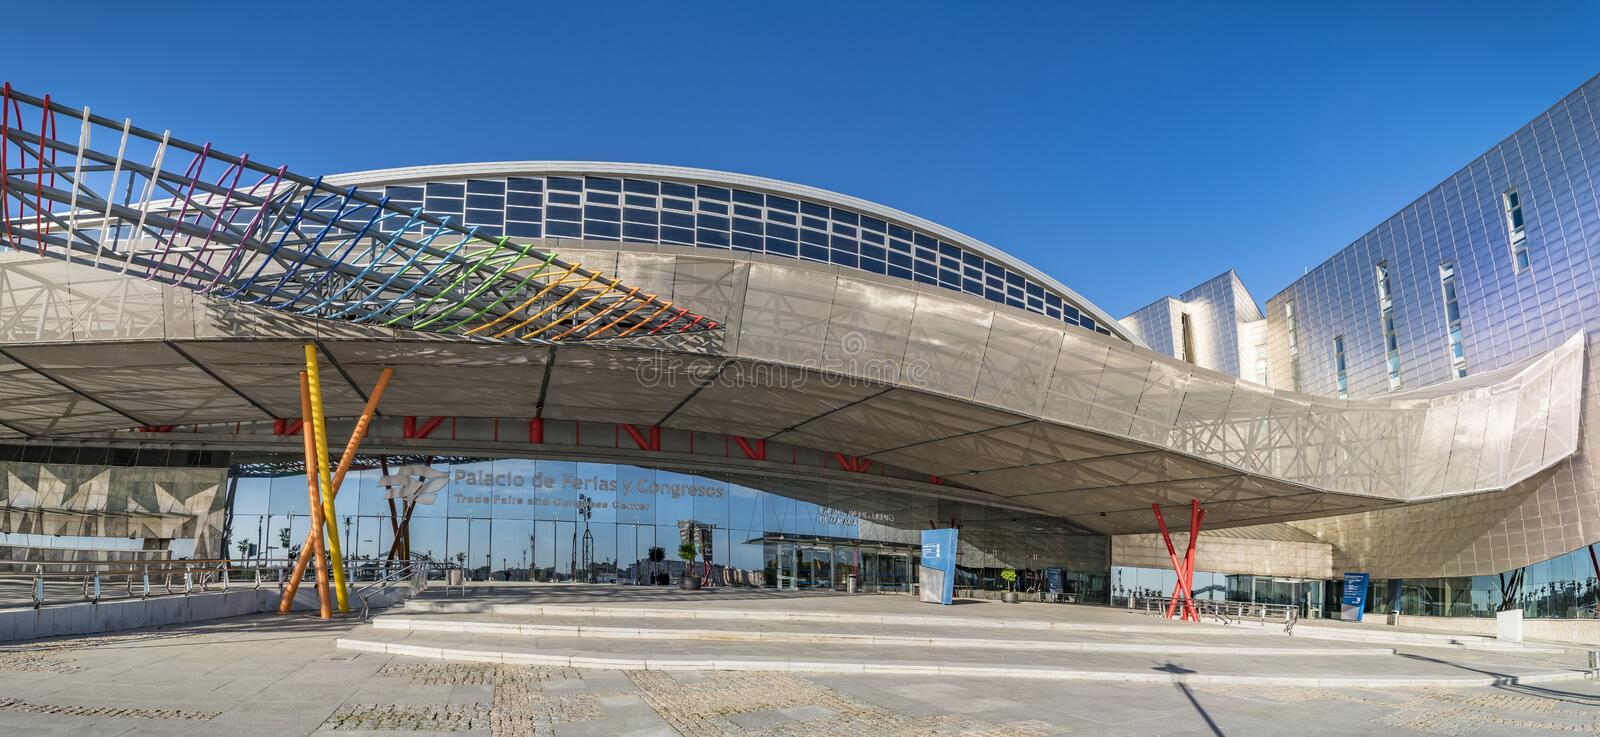 Trade Fairs and Congress Center in Malaga, Spain royalty free stock photo